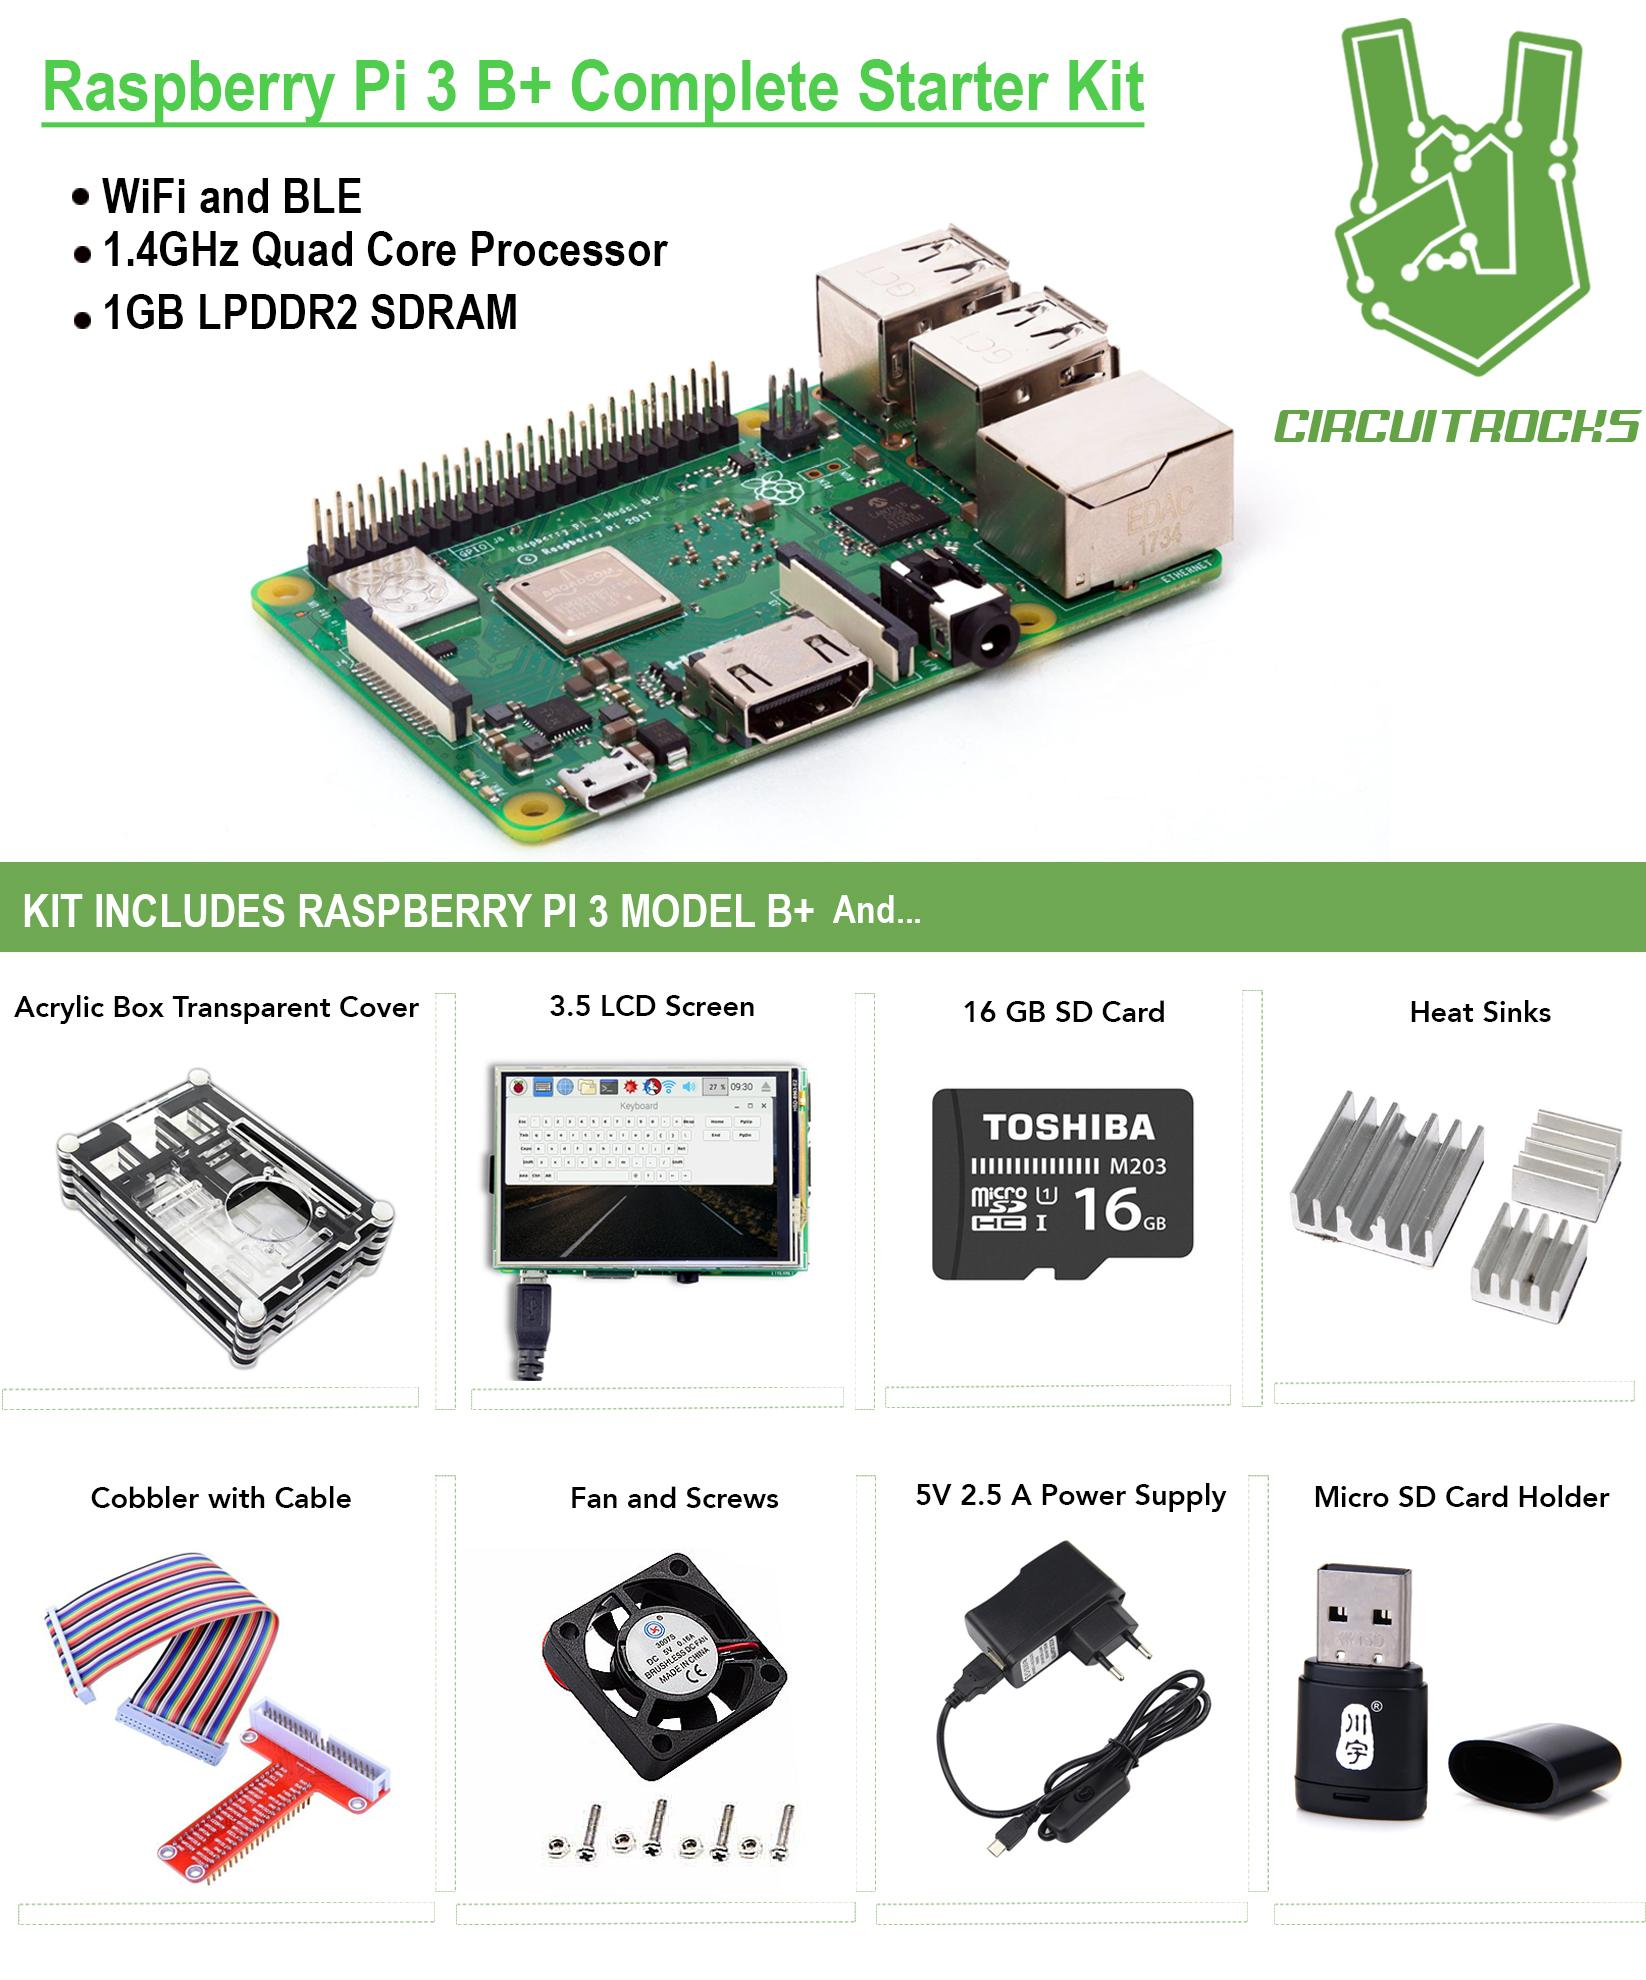 Motherboards For Sale Computer Prices Brands Specs Real Old Circuit Board Pcb Motherboard Key Chain Re Raspberry Pi 3 B Complete Starter Kit